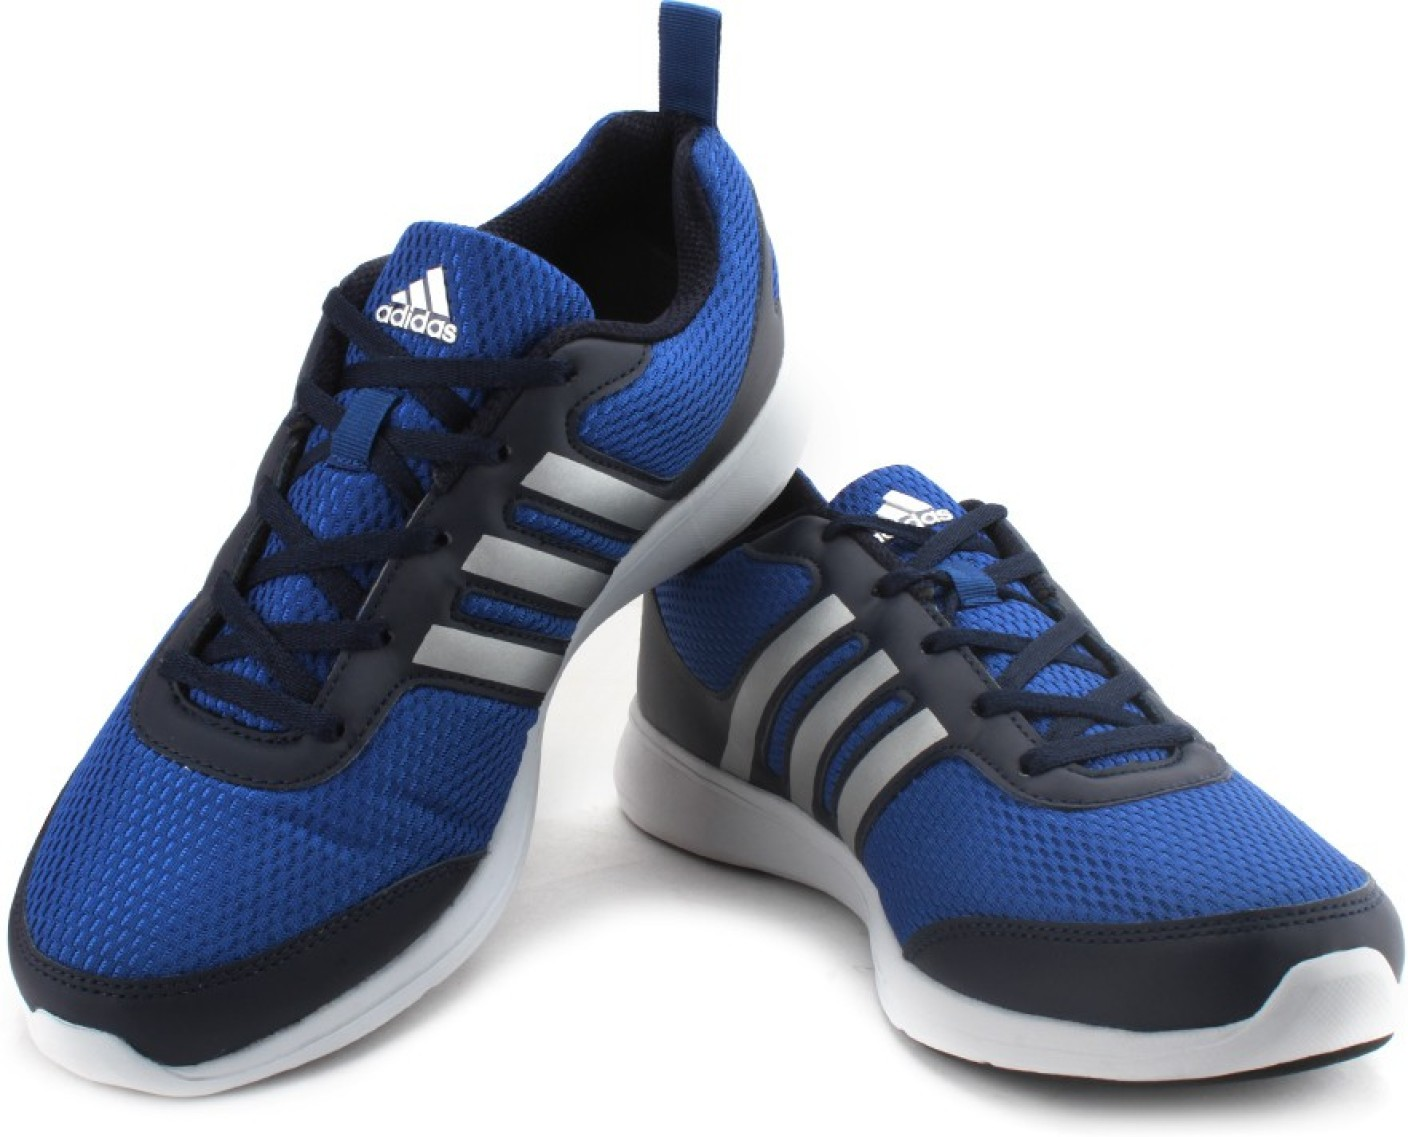 Best Online Running Shoes Website